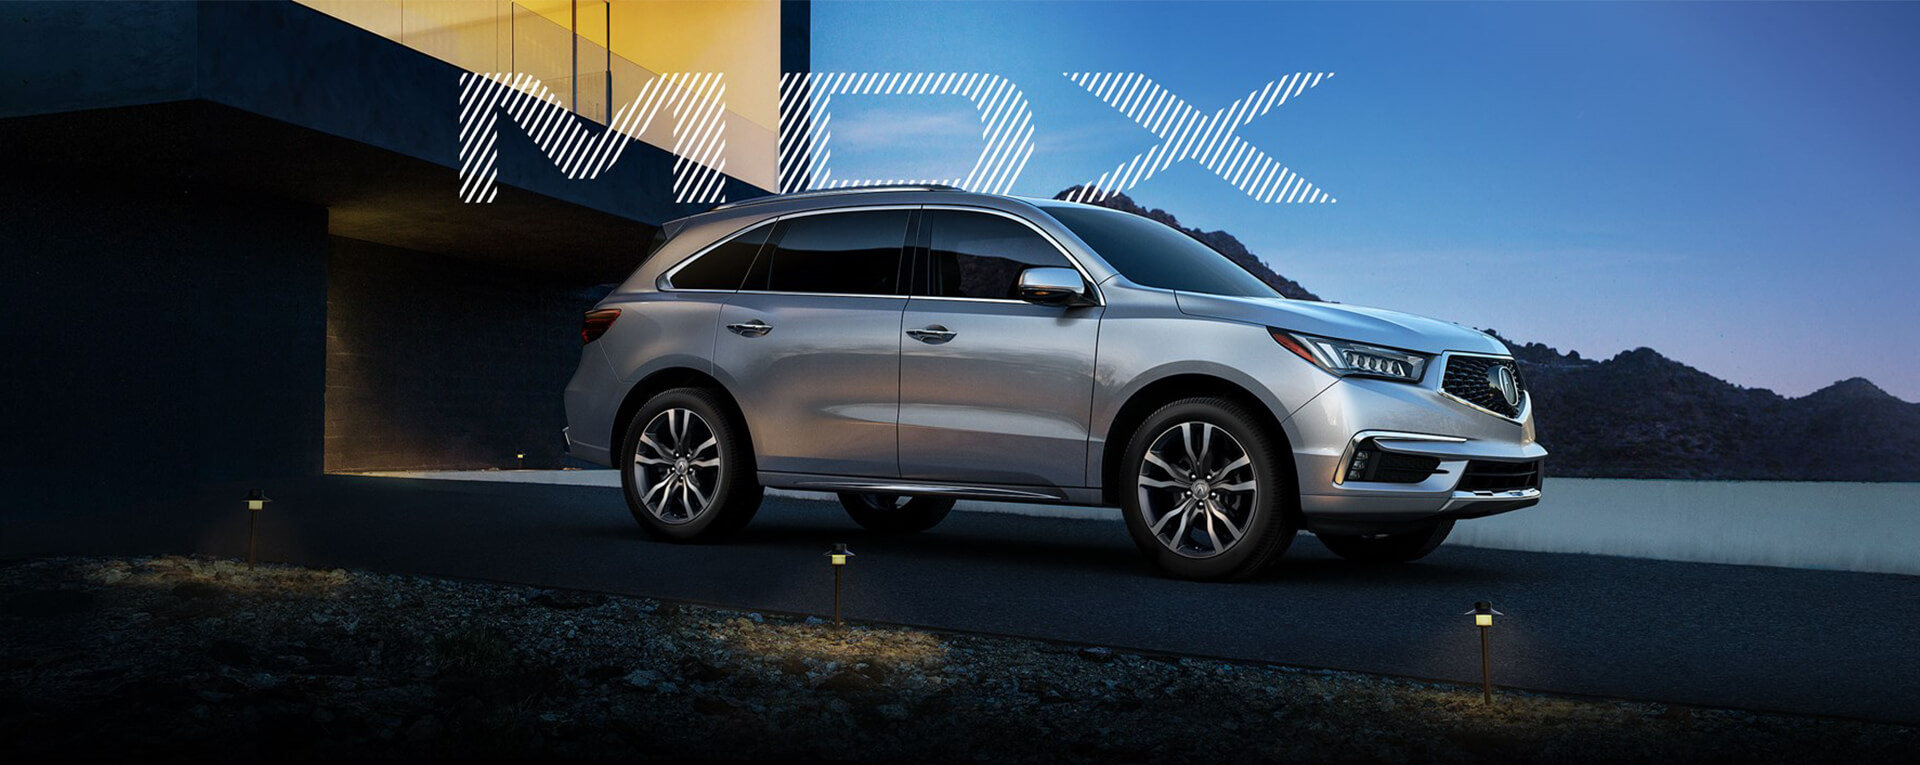 2019 Acura MDX | Oregon Acura Dealers